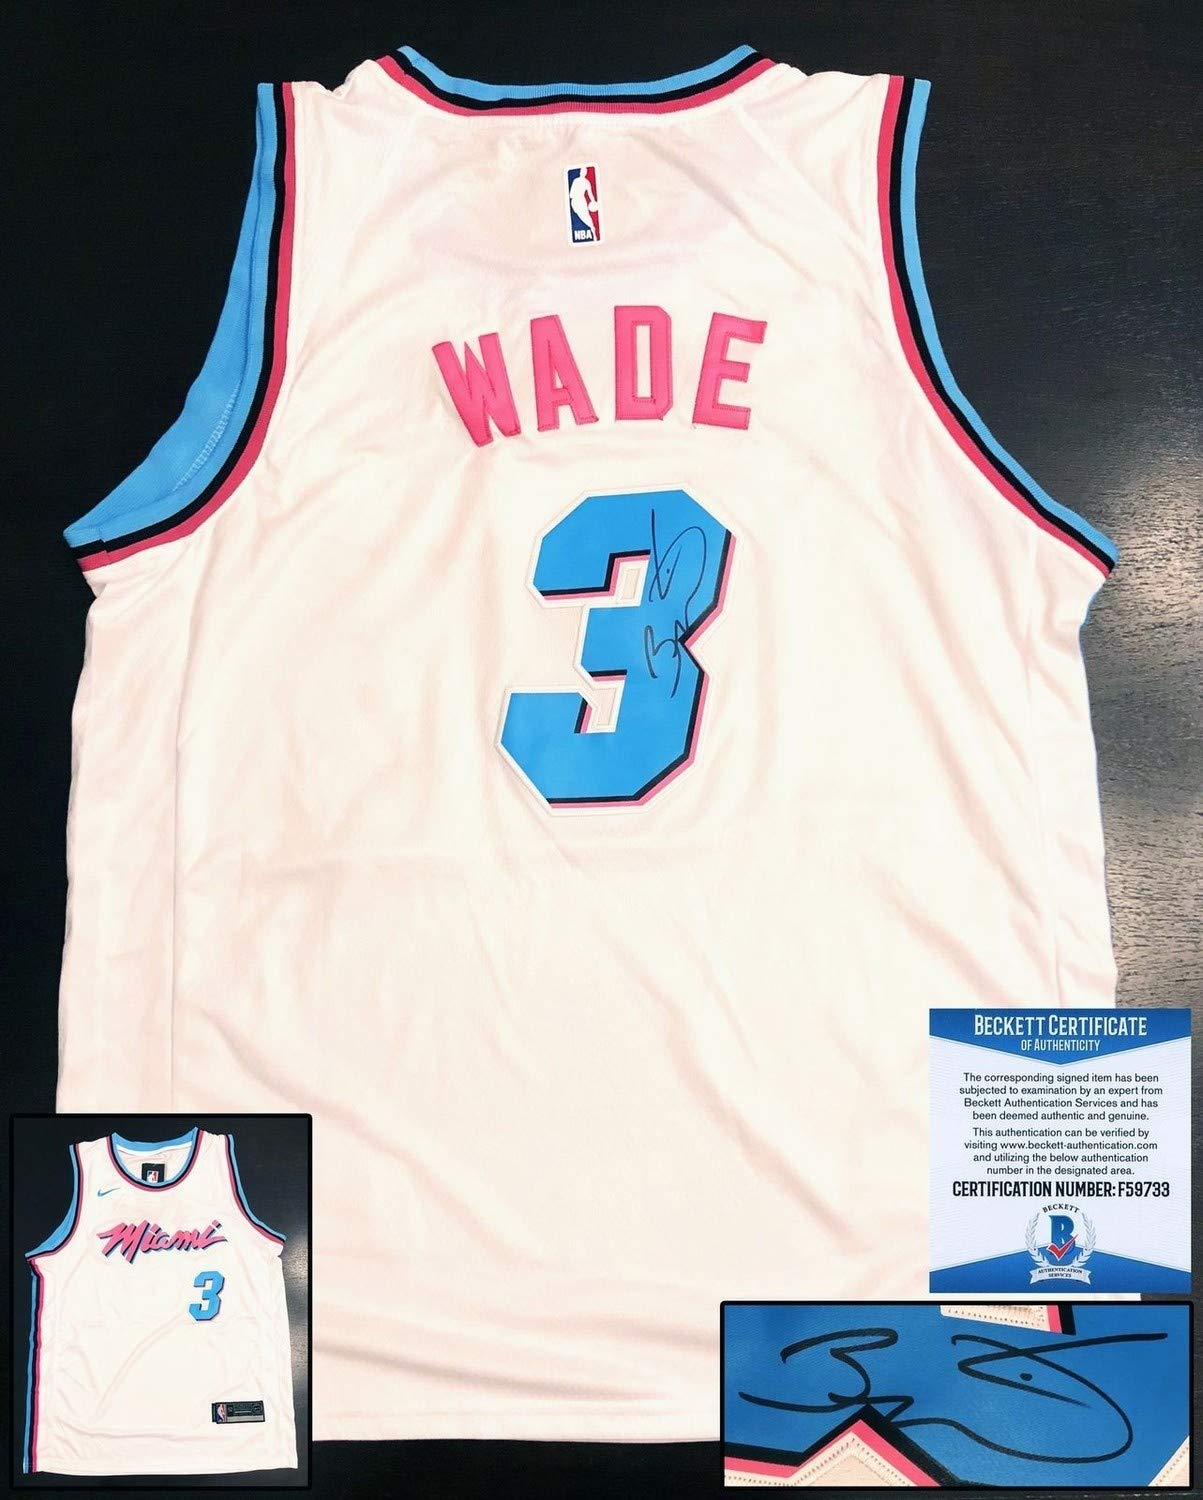 wholesale dealer feba5 44e42 Miami Heat Dwyane Wade Autographed Signed Miami Vice Jersey ...